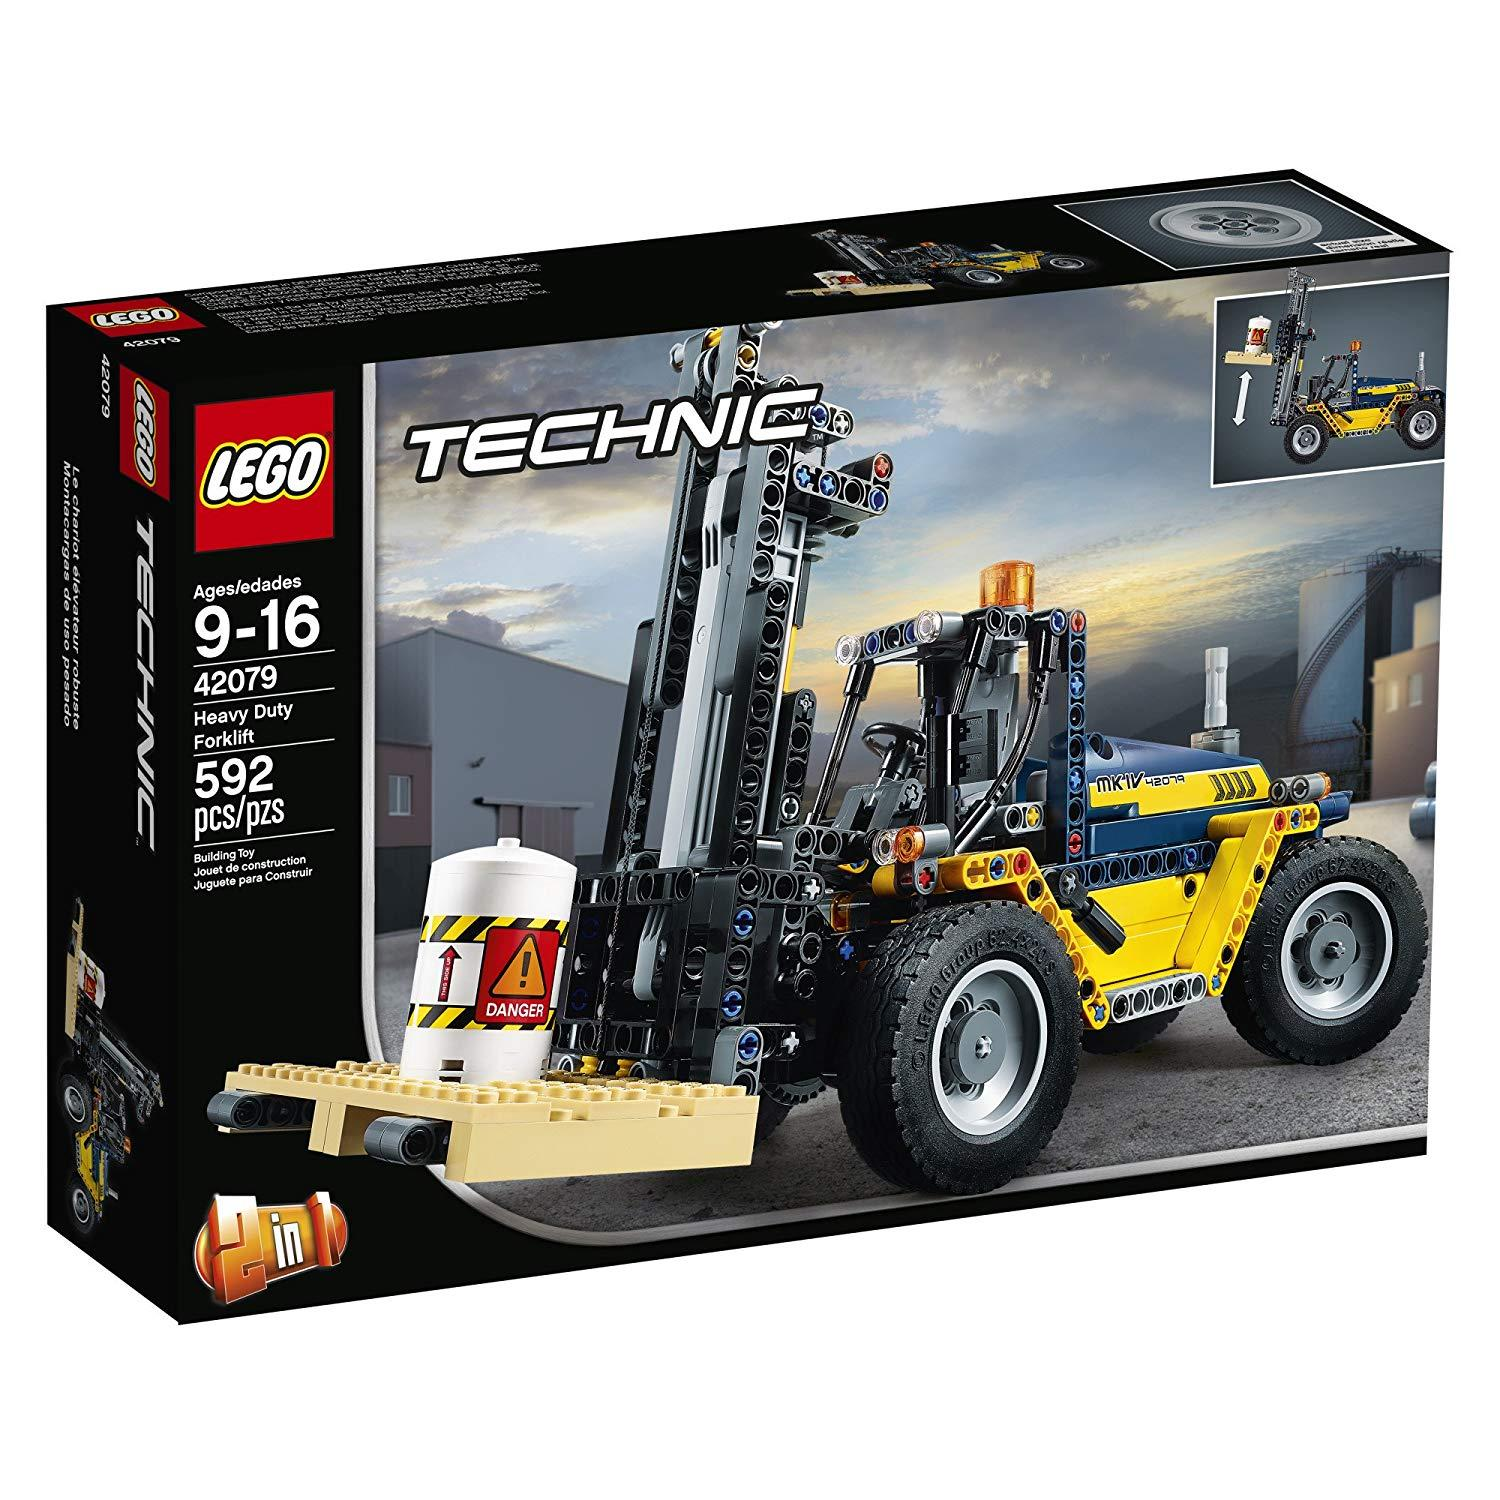 Lego Technic Heavy Duty Forklift (42079)